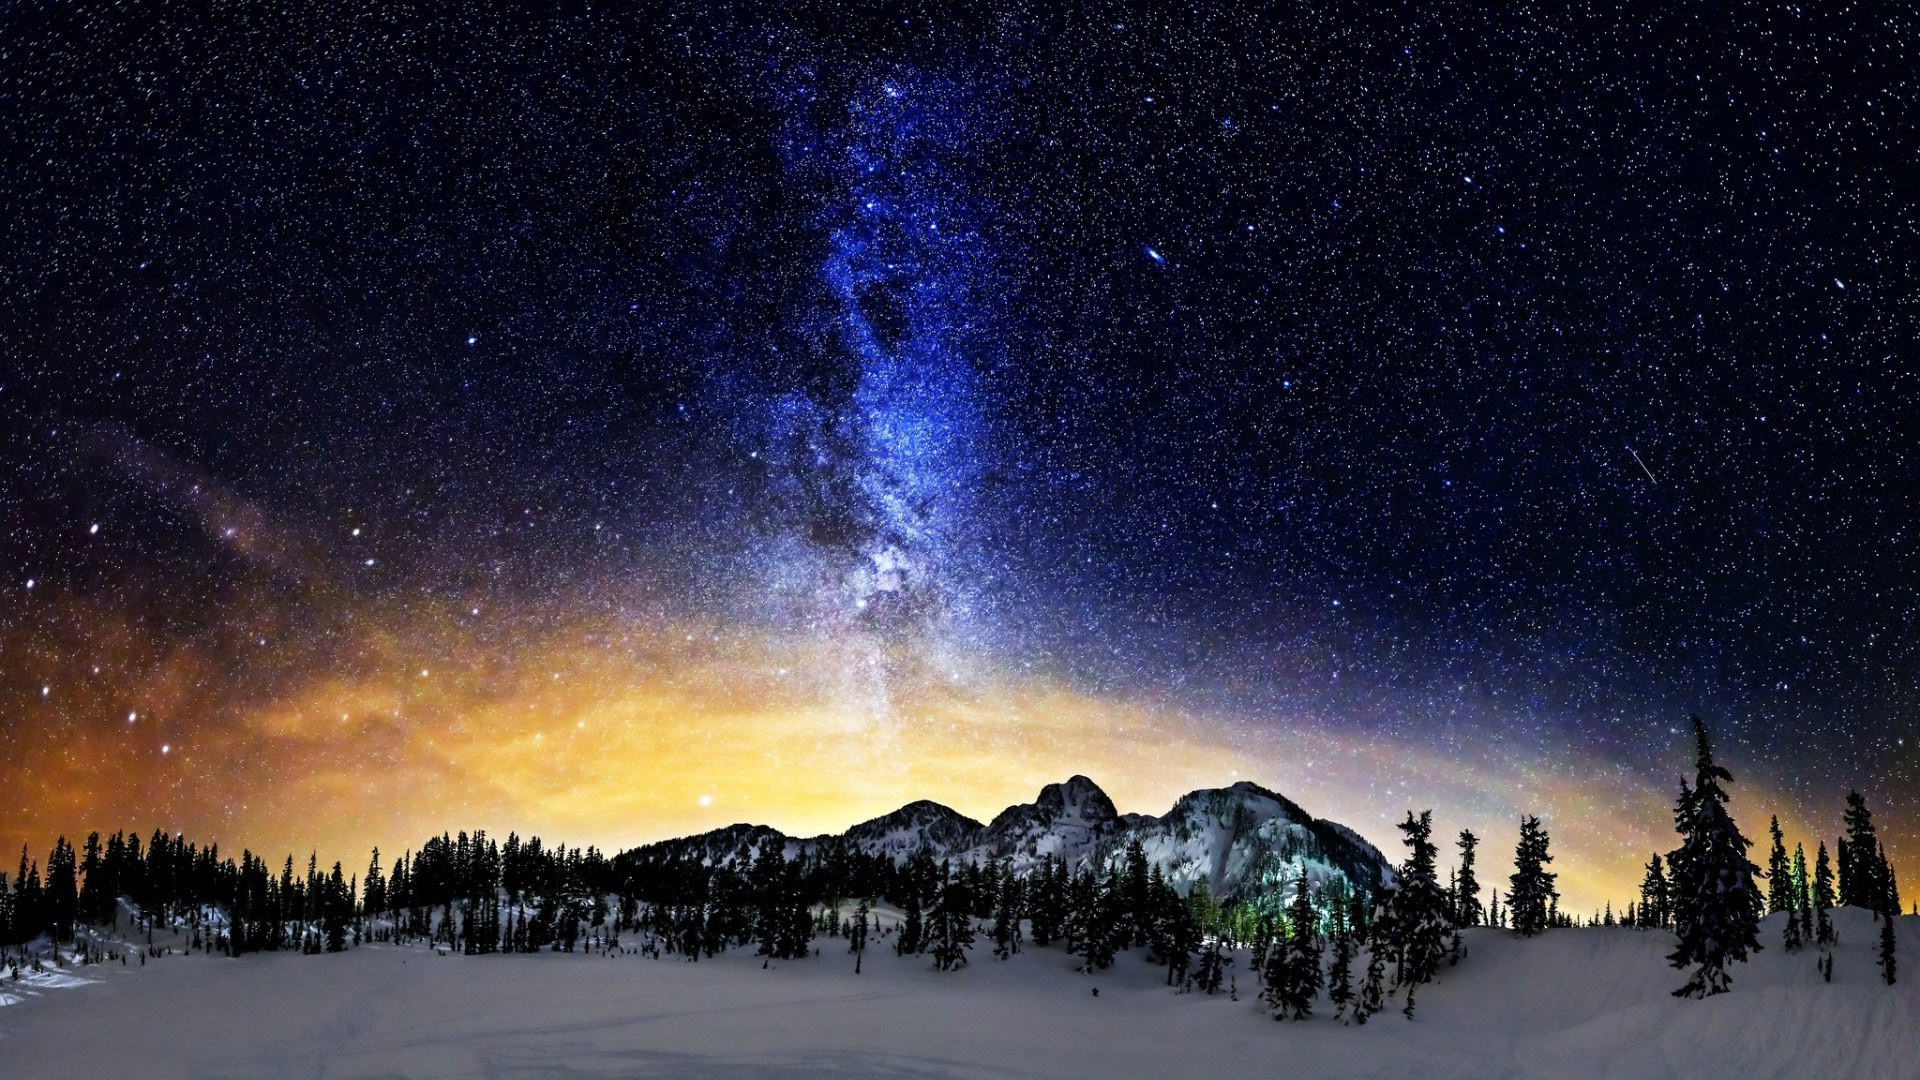 Milky Way above the snowy mountains wallpaper 14966 1920x1080